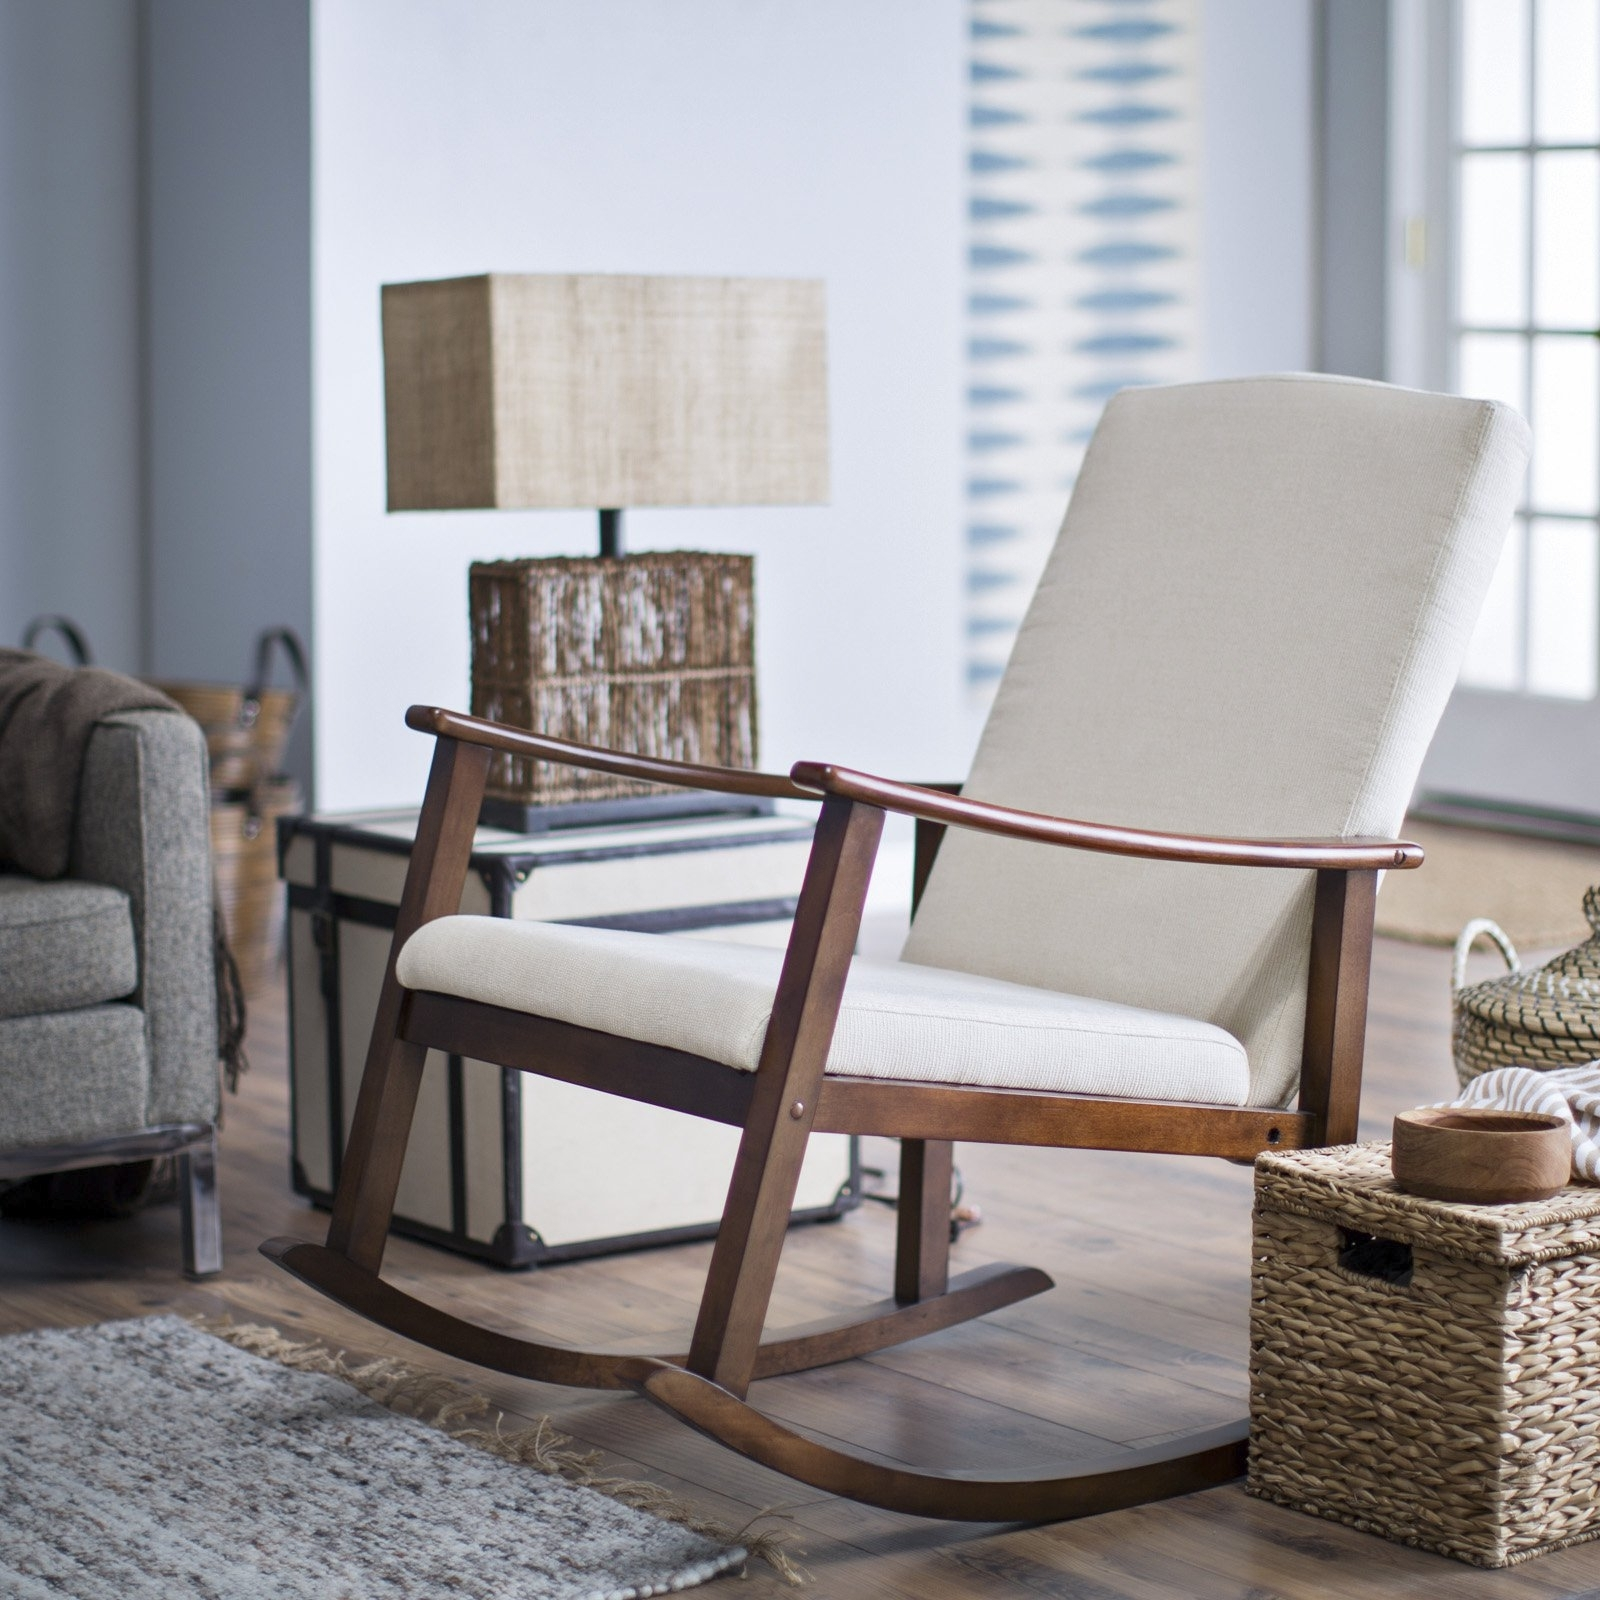 2018 Rocking Chairs For Living Room Throughout Belham Living Holden Modern Indoor Rocking Chair Upholstered Master (View 1 of 15)